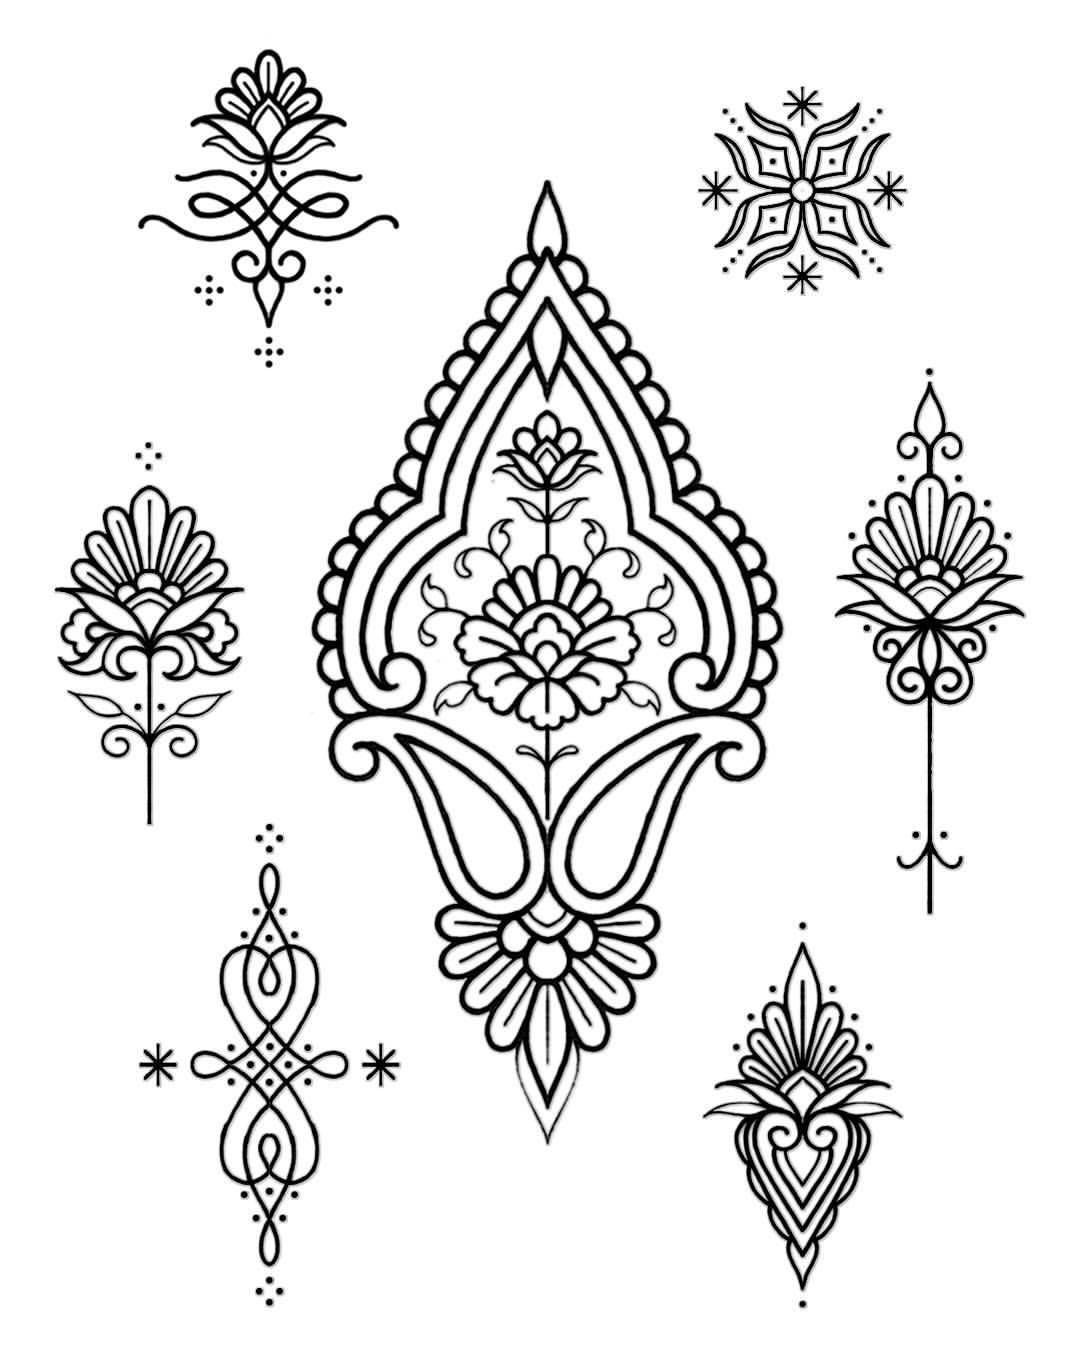 Nouveaux Flashs Disponibles Places Disponibles En Aout Intricate Tattoo Pattern Tattoo Mandala Tattoo Design